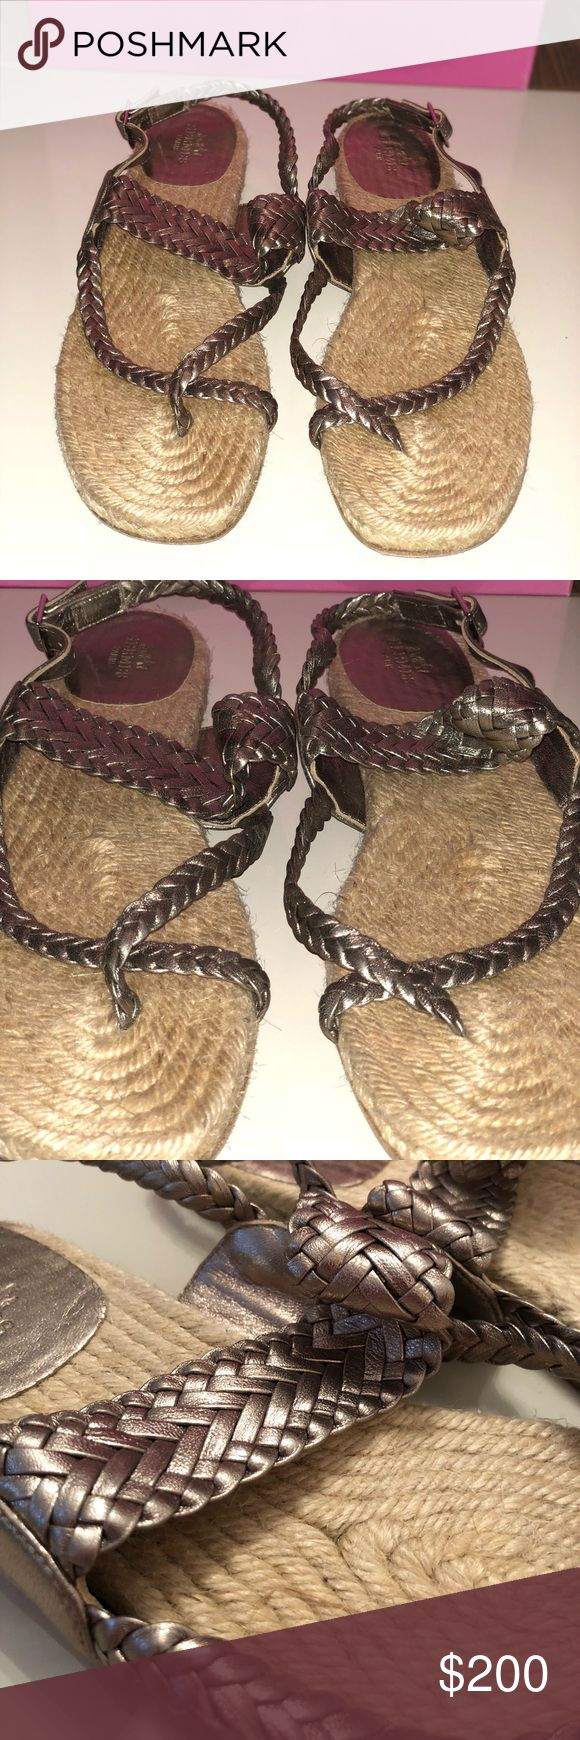 Hermès Quindi Silver Espadrille Sandals Worn only once. These gorgeous sandals are perfect for the beach and a staple for the summer. No imperfections on the shoe other than the sole. In a very pretty metallic silver color. No original box included Hermes Shoes Espadrilles